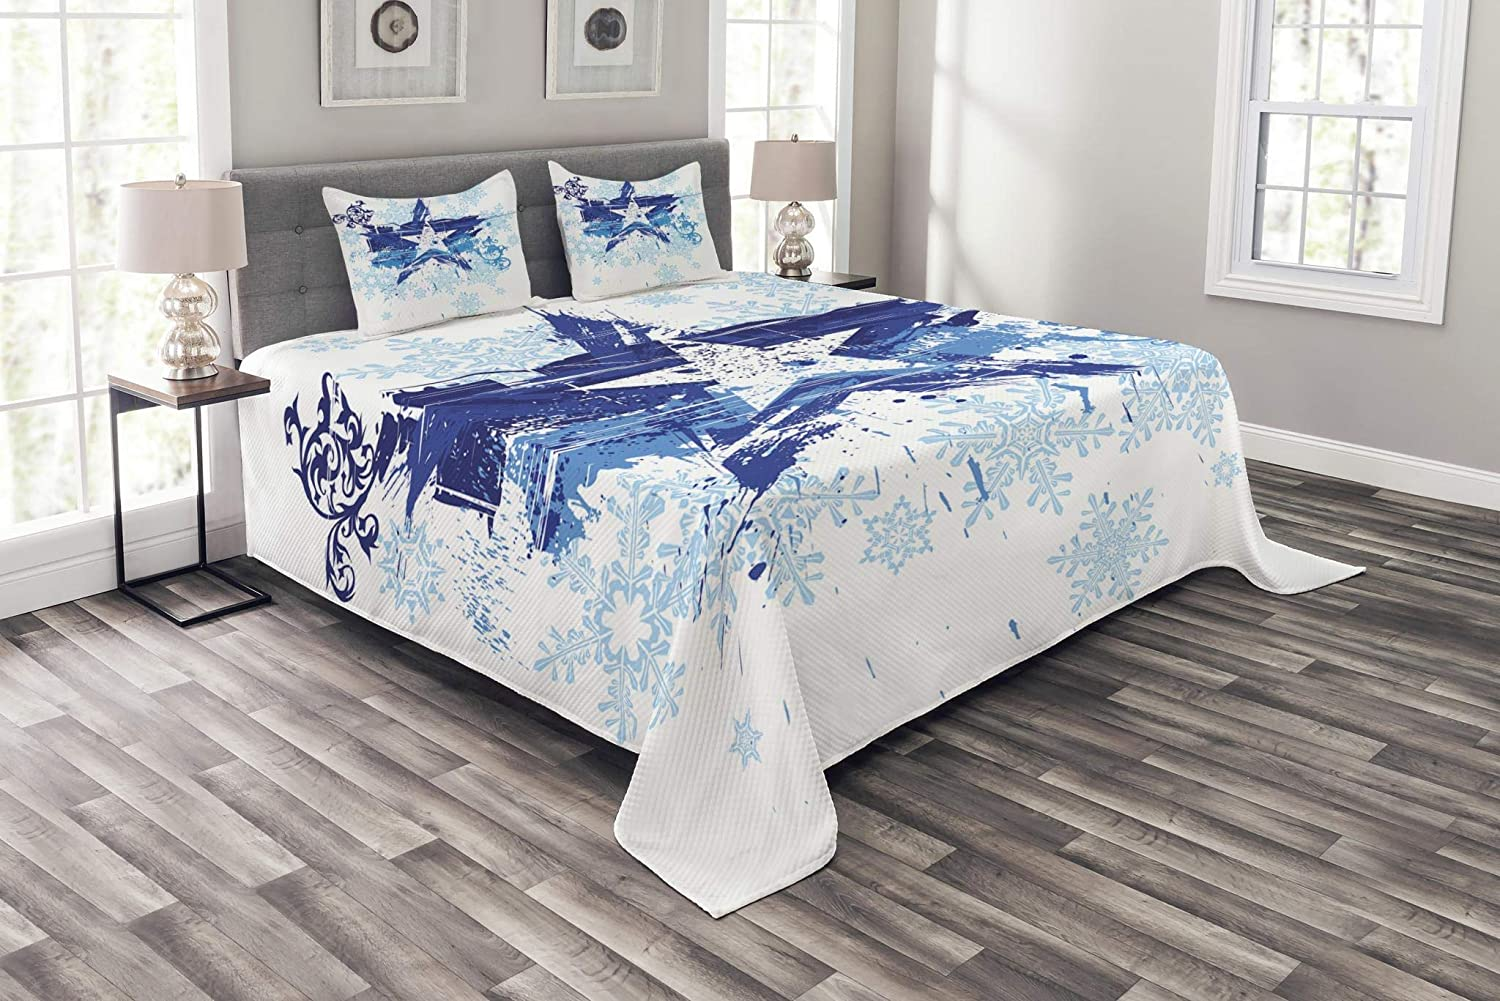 Lunarable Abstract Bedspread Set Queen Size, Grunge Star and Snowflakes on Floral Pattern Frozen Winter Theme Digital Print, Decorative Quilted 3 Piece Coverlet Set with 2 Pillow Shams, Blue and White bed_30320_queen